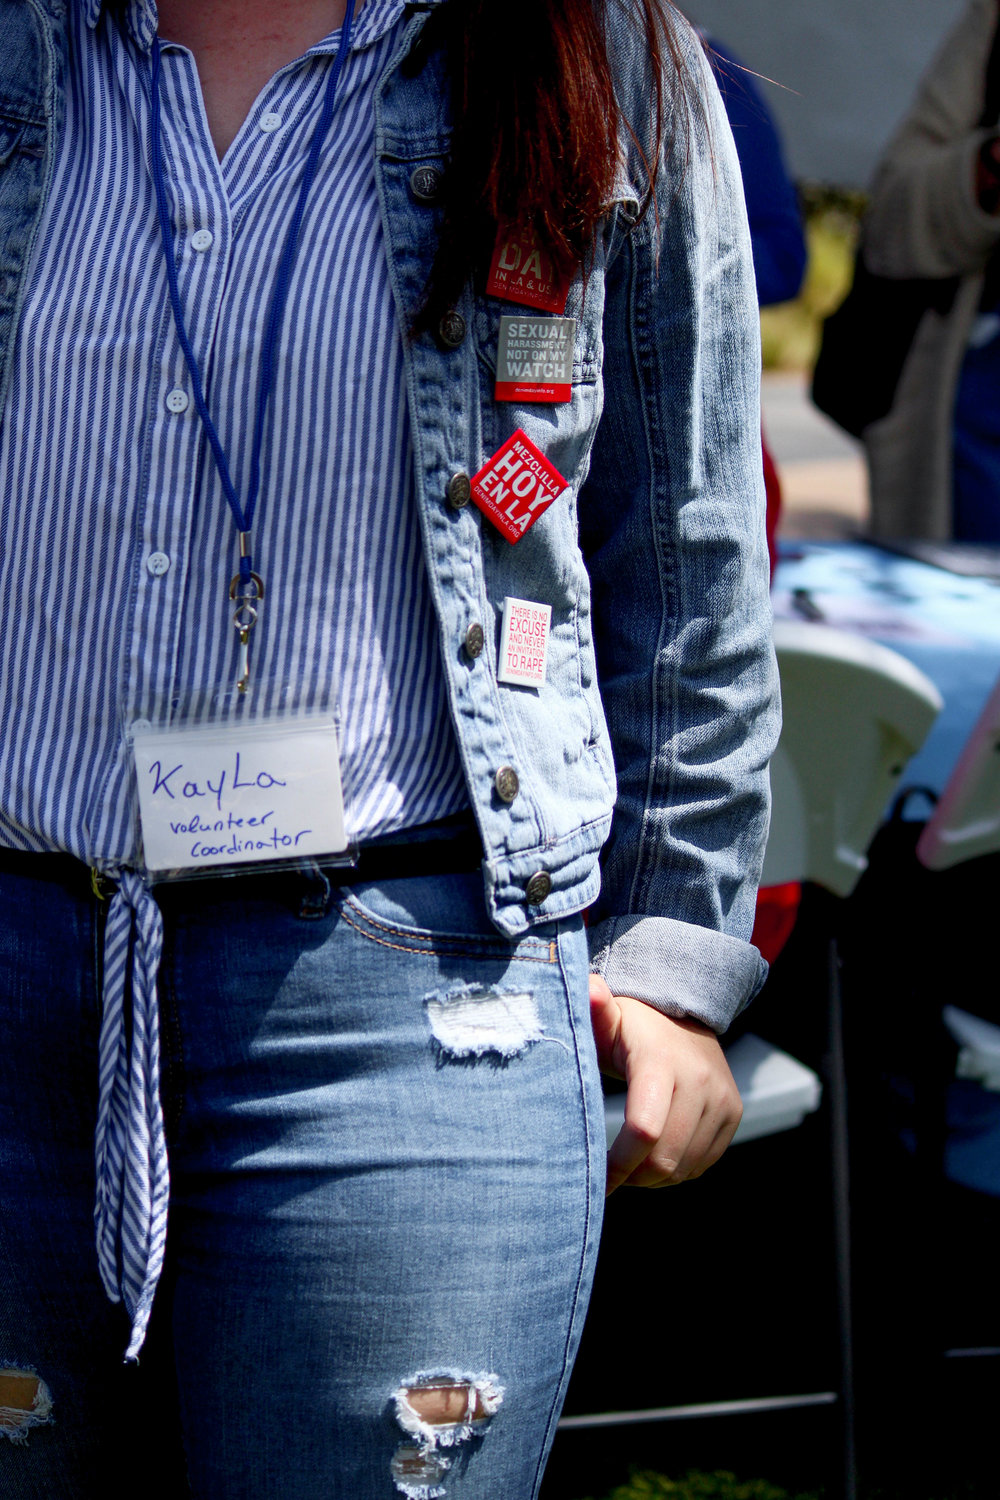 Kayla Hefling, volunteer coordinator for SMCs Consent week, wears denim as apart of the 19 year old National Denim Day in Santa Monica, California, on Wednesday, April 25, 2018. (Pyper Witt/ the Corsair)